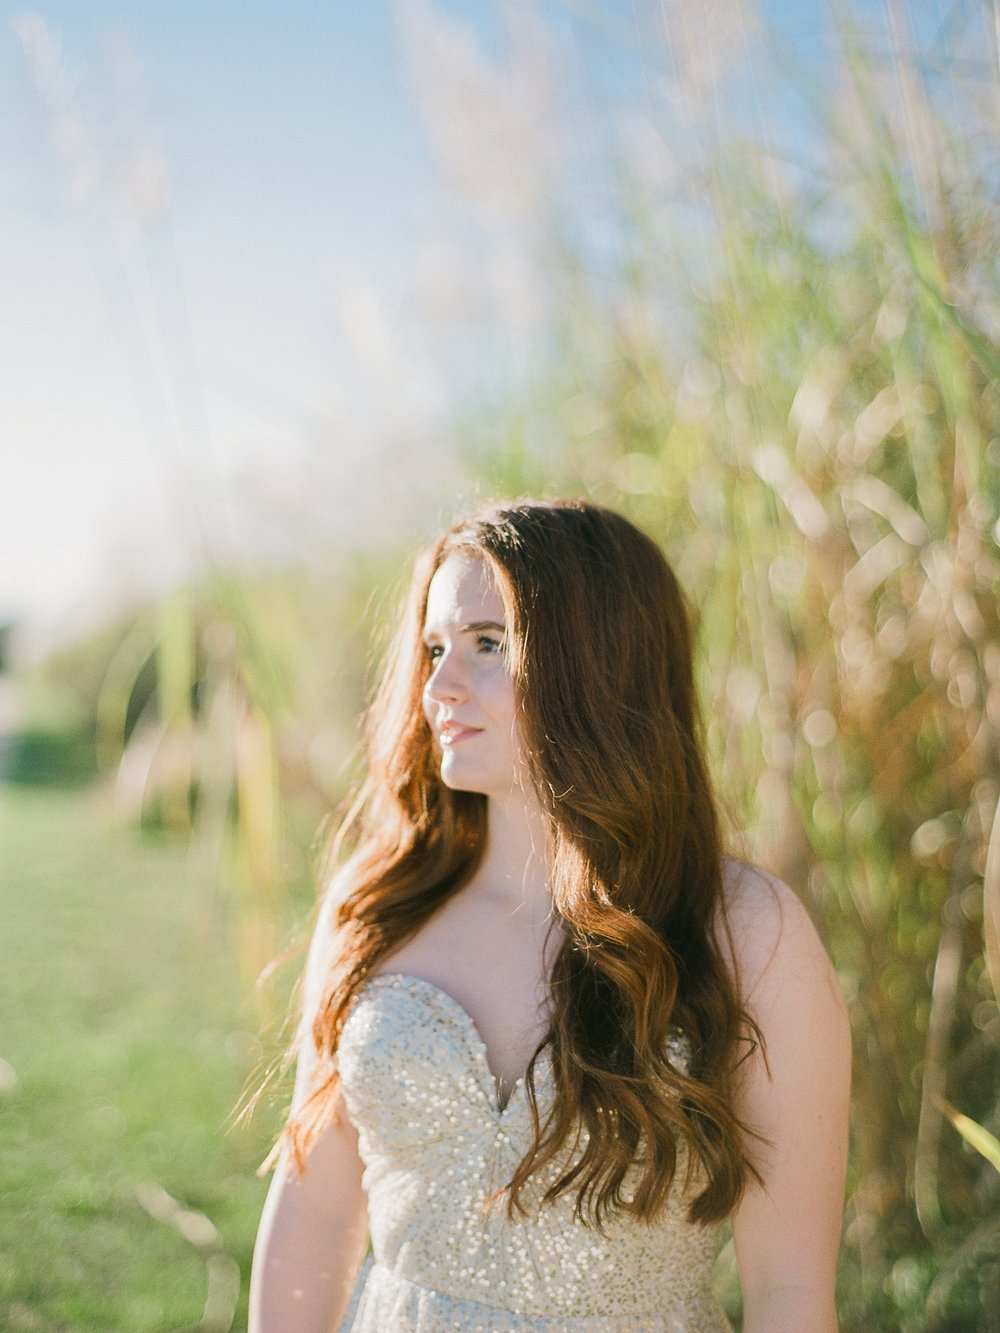 Sugarcane Inspired Shoot 2 7.jpg